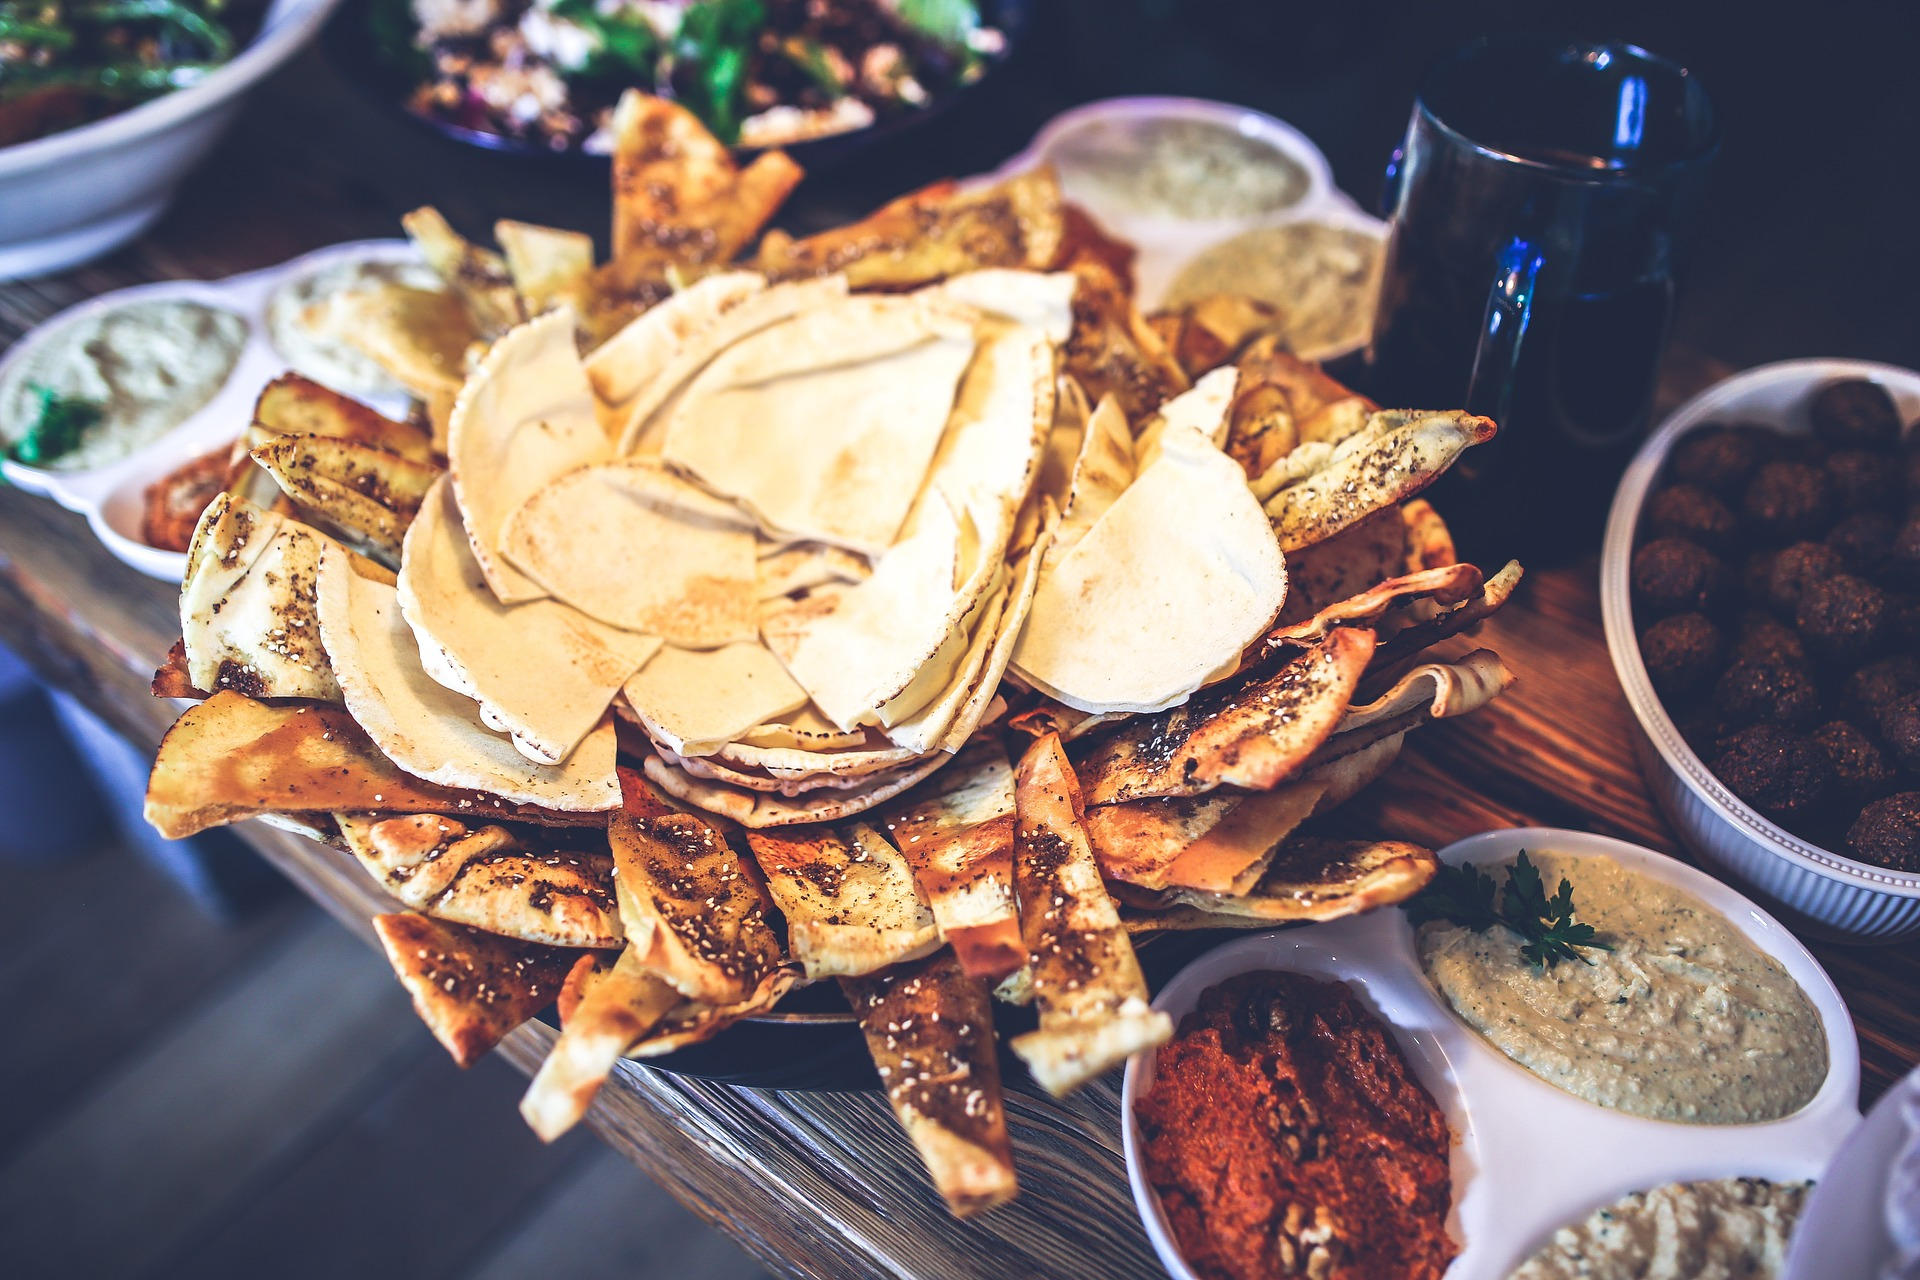 Recipes from Appliance City for Nacho Day